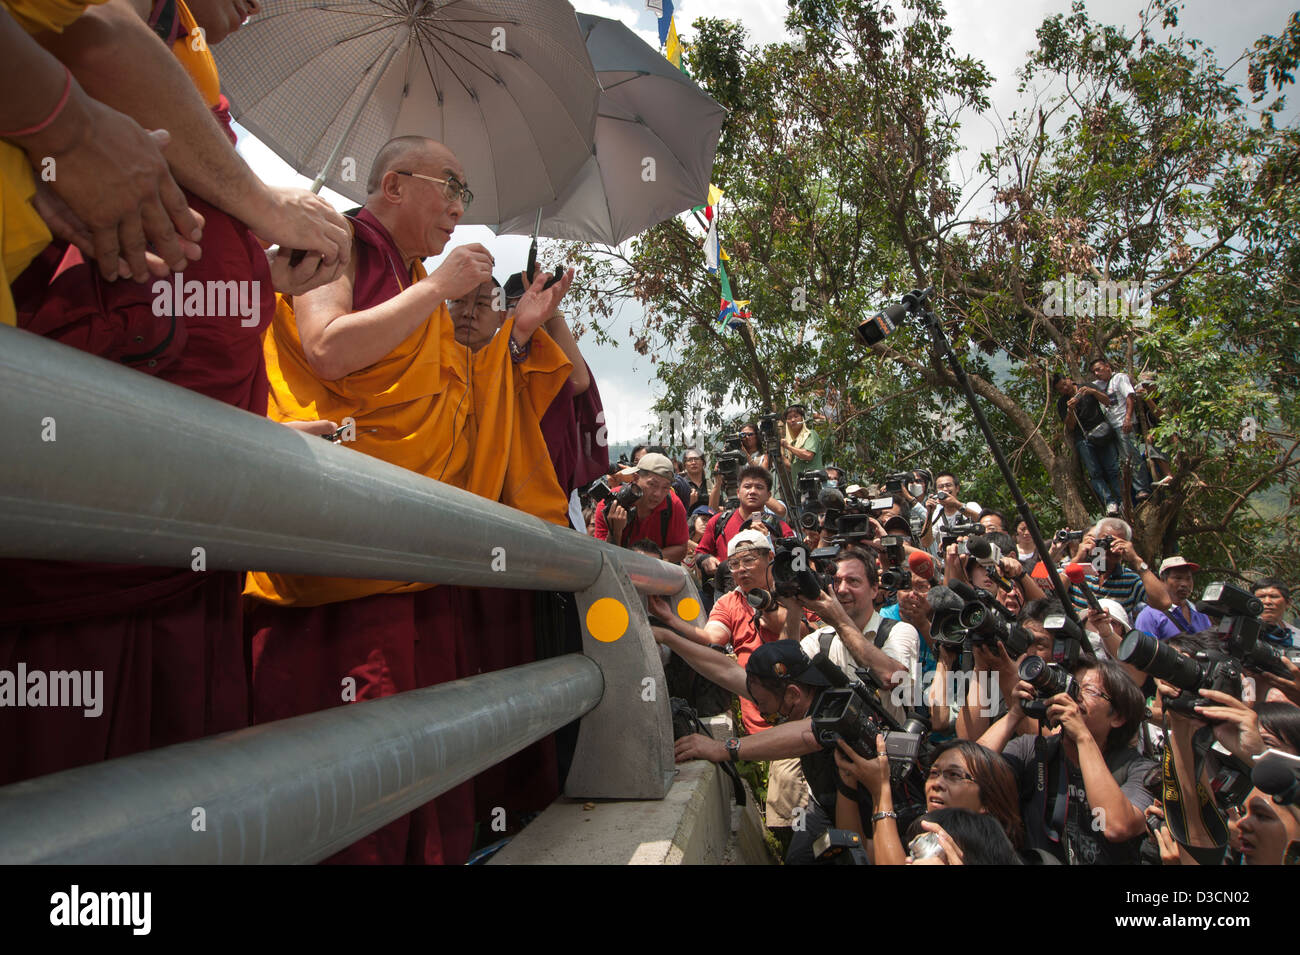 The Dalai Lama, Tibet's leader-in-exile, visits Taiwan to pray for victims of Typhoon Morakot in 2009. - Stock Image